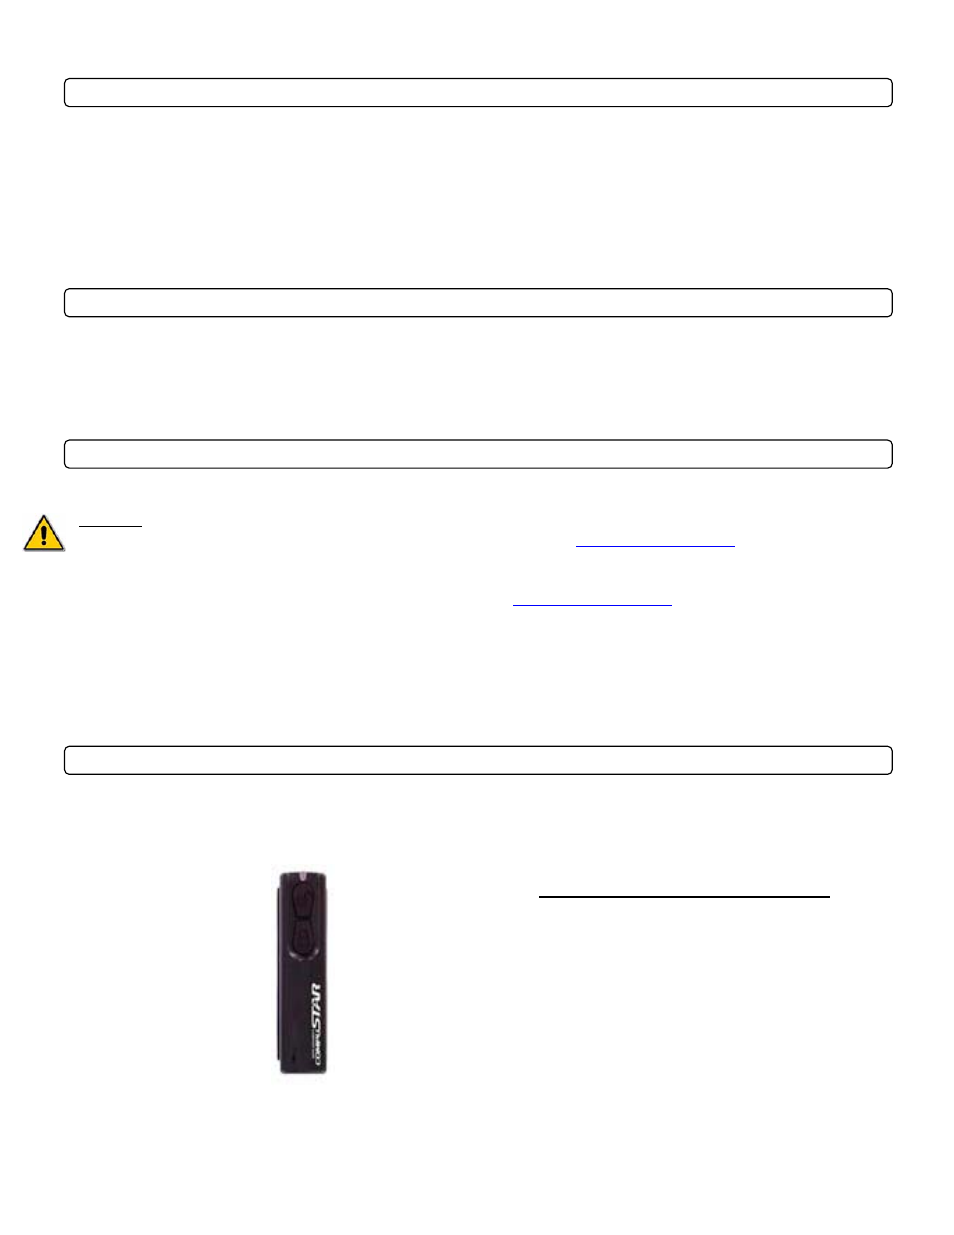 Introduction, Kit(s) contents, Remote reference | Warranty coverage |  CompuSTAR CM1000